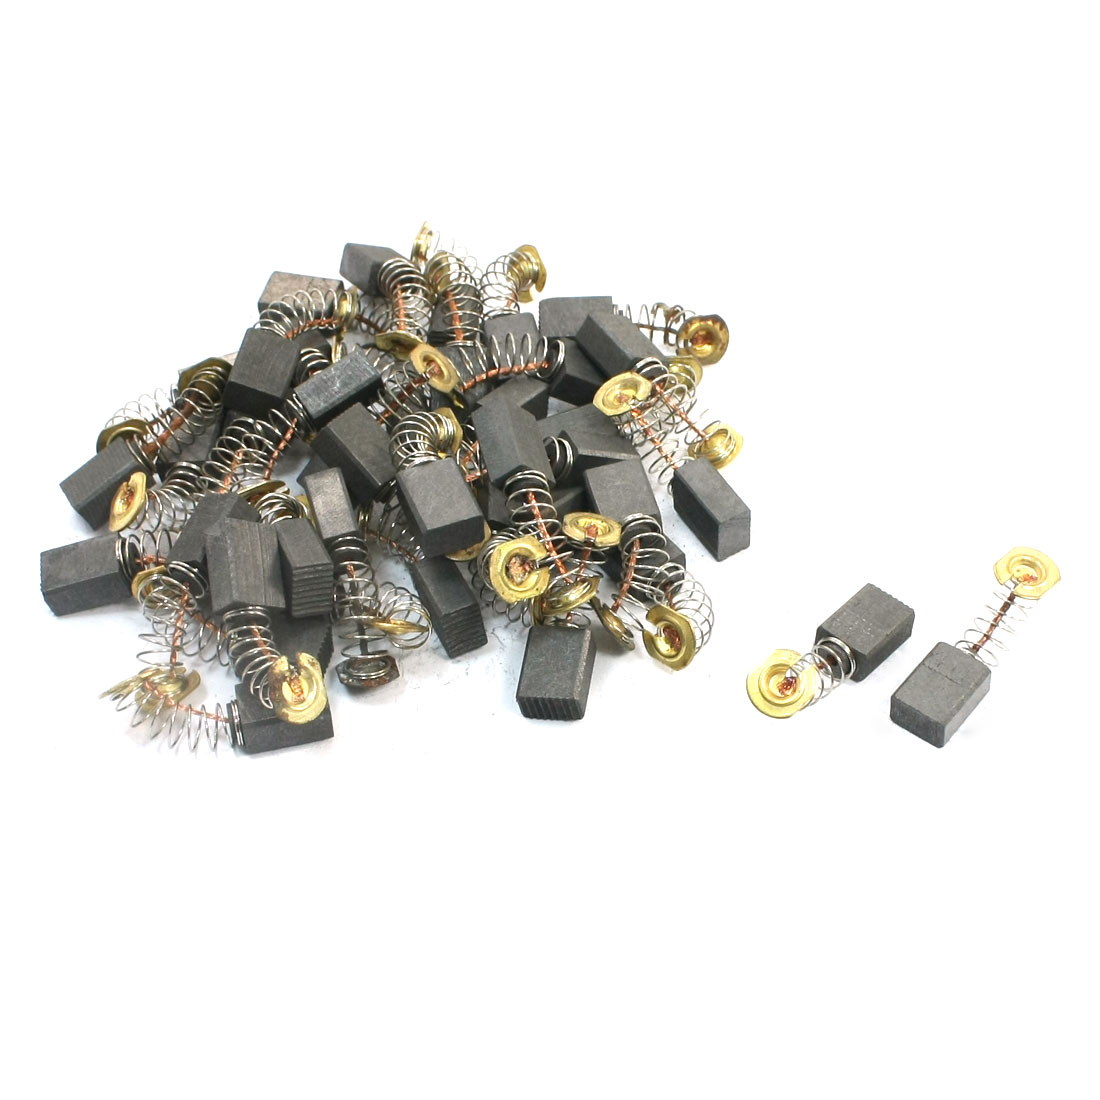 "40Pcs Angle Grinder Parts Motor Carbon Brushes 31/64""x9/25""x15/64"" 411#"